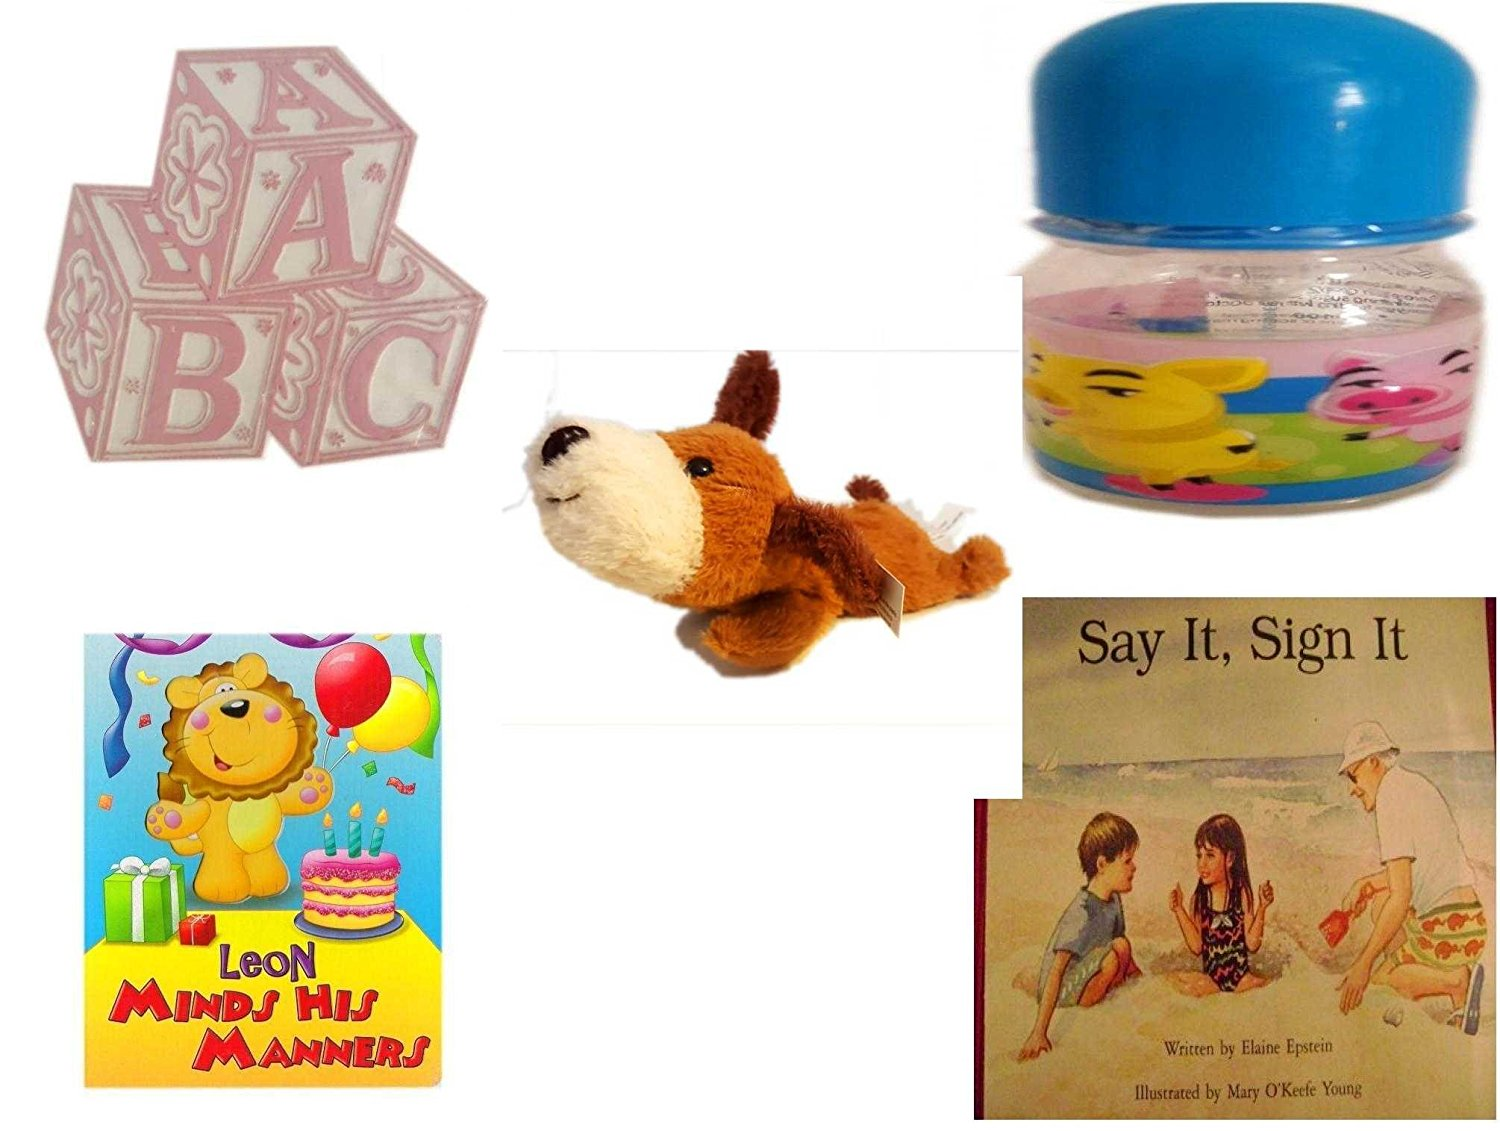 Children's Gift Bundle - Ages 0-2 [5 Piece] - ABC Baby Blocks Cake Topper Pink Girl - ID Gear Baby Bottle Three Pigs 4 oz - Soft n' Cuddly Big Head Puppy - Leon Minds His Manners Board Book - Say It